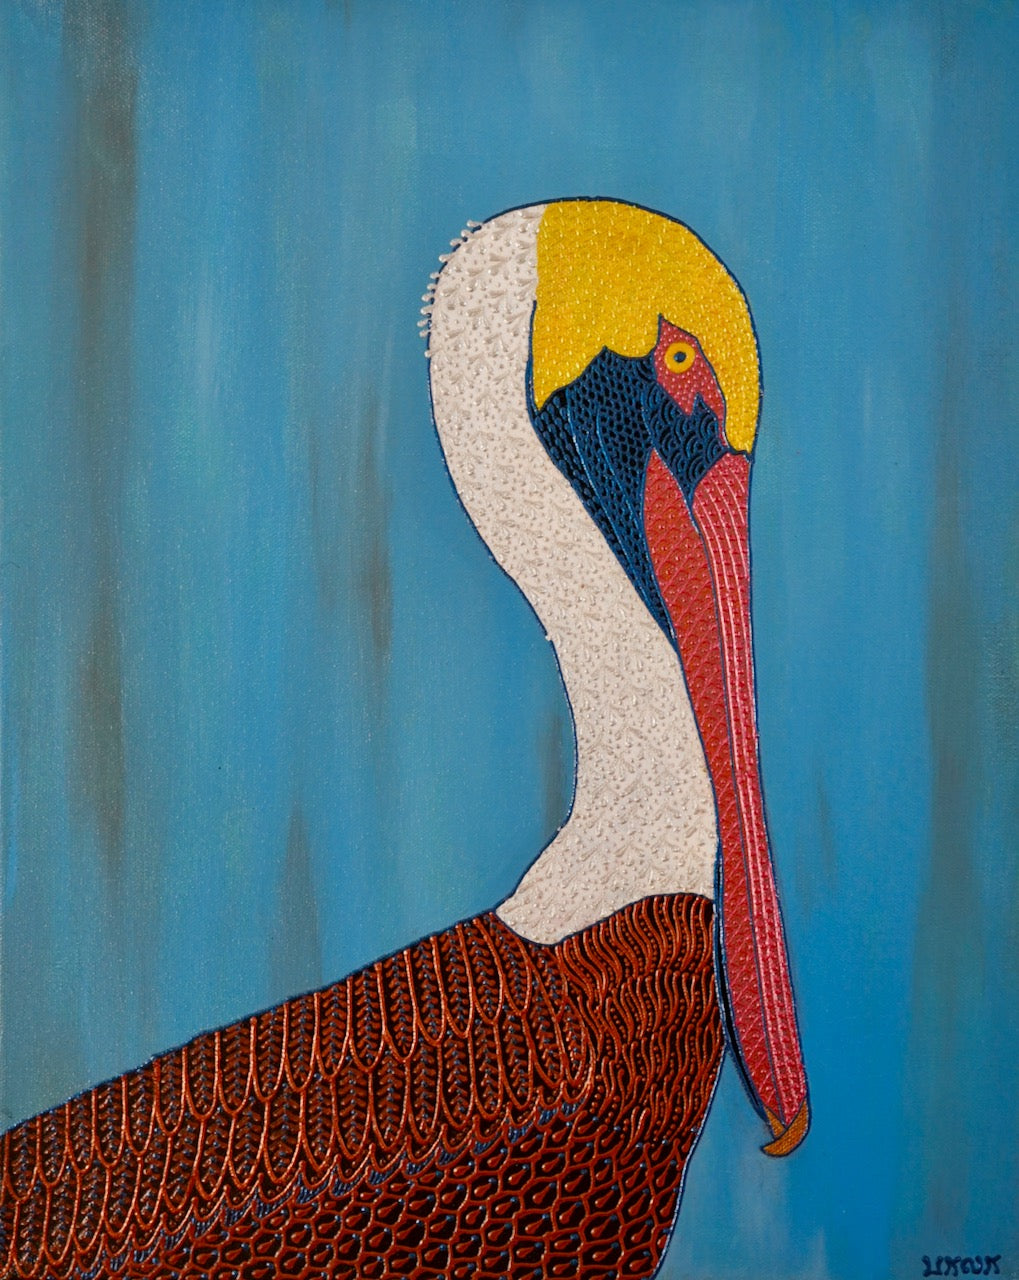 Brown Pelican - Art by Bala